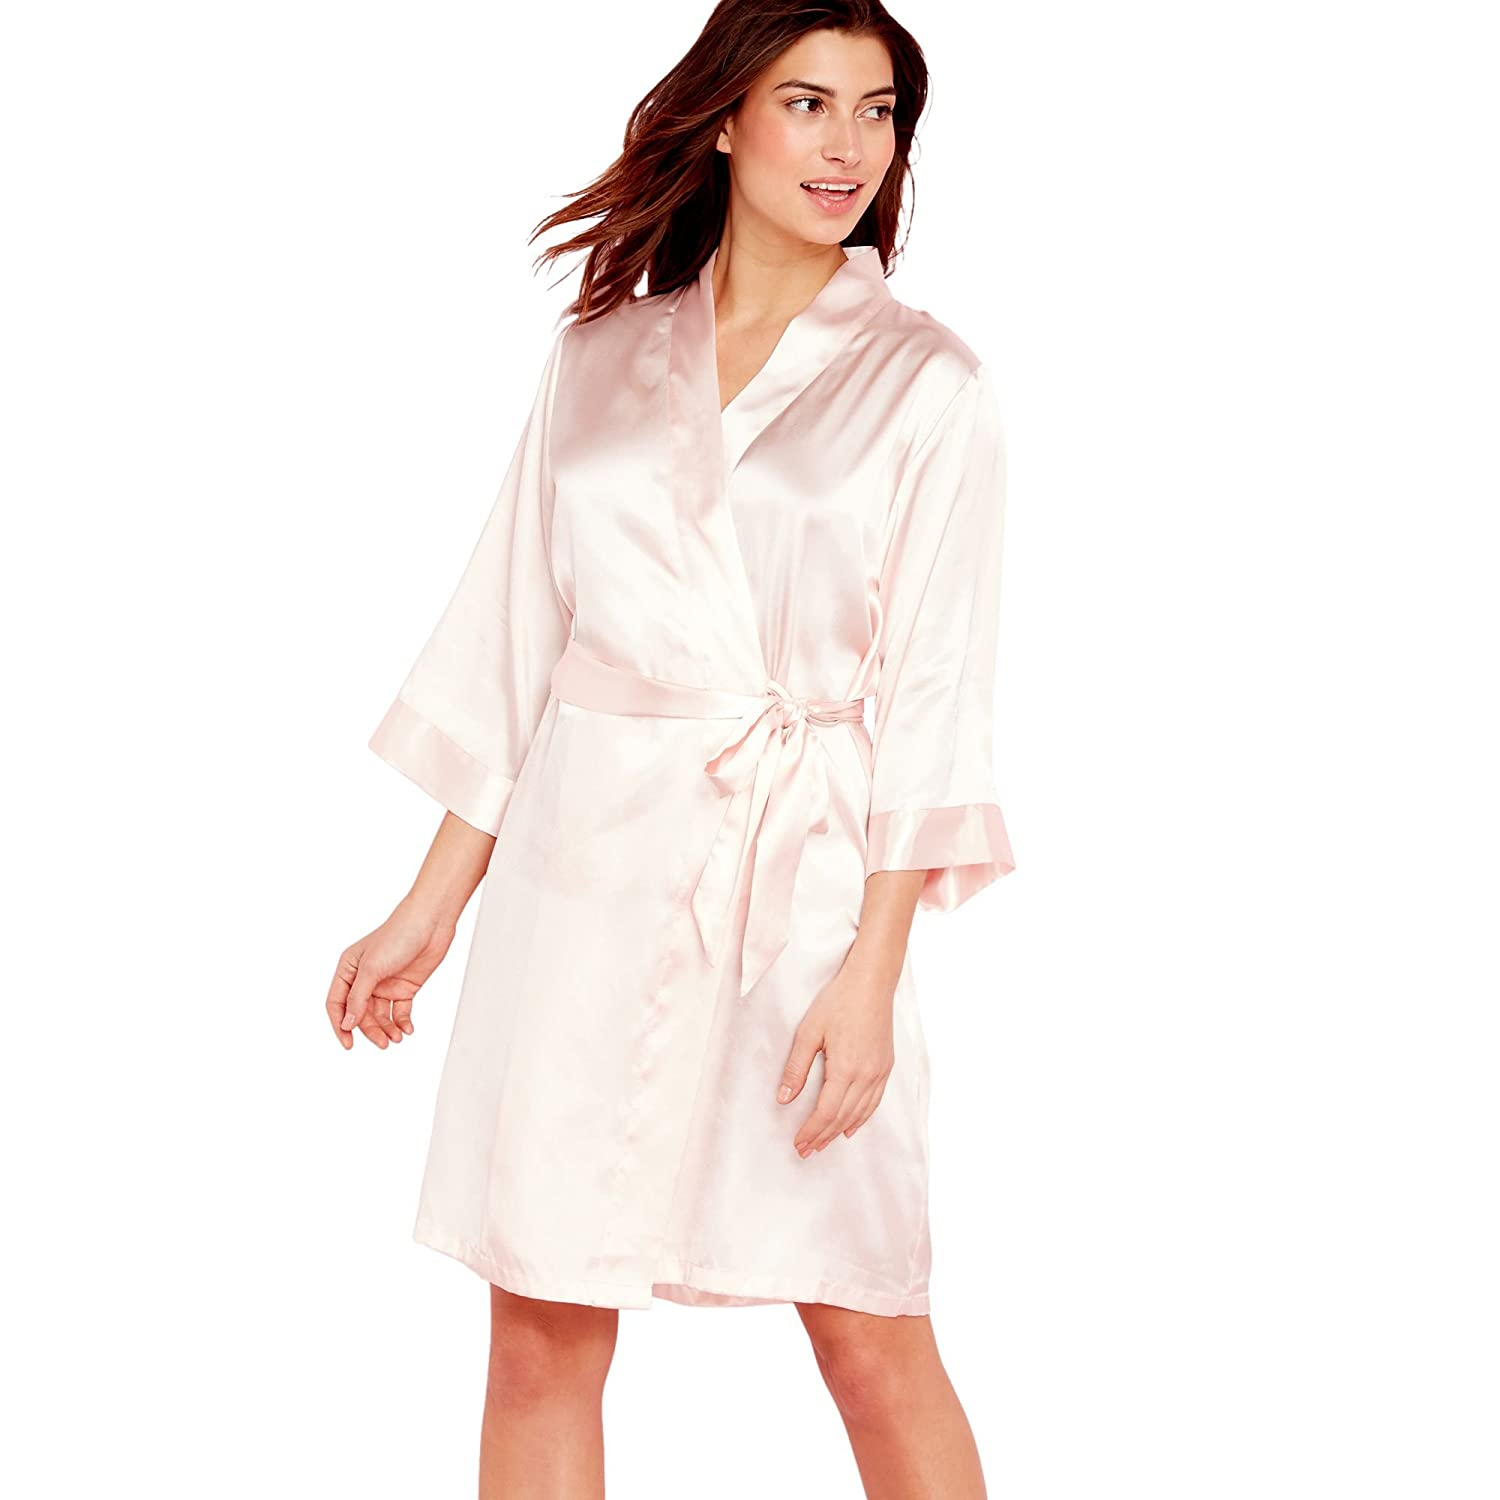 223c9ae183 Debenhams Pale Pink Satin  Team Bride  3 4 Length Sleeve Dressing Gown 16  to 18  The Collection  Amazon.co.uk  Clothing